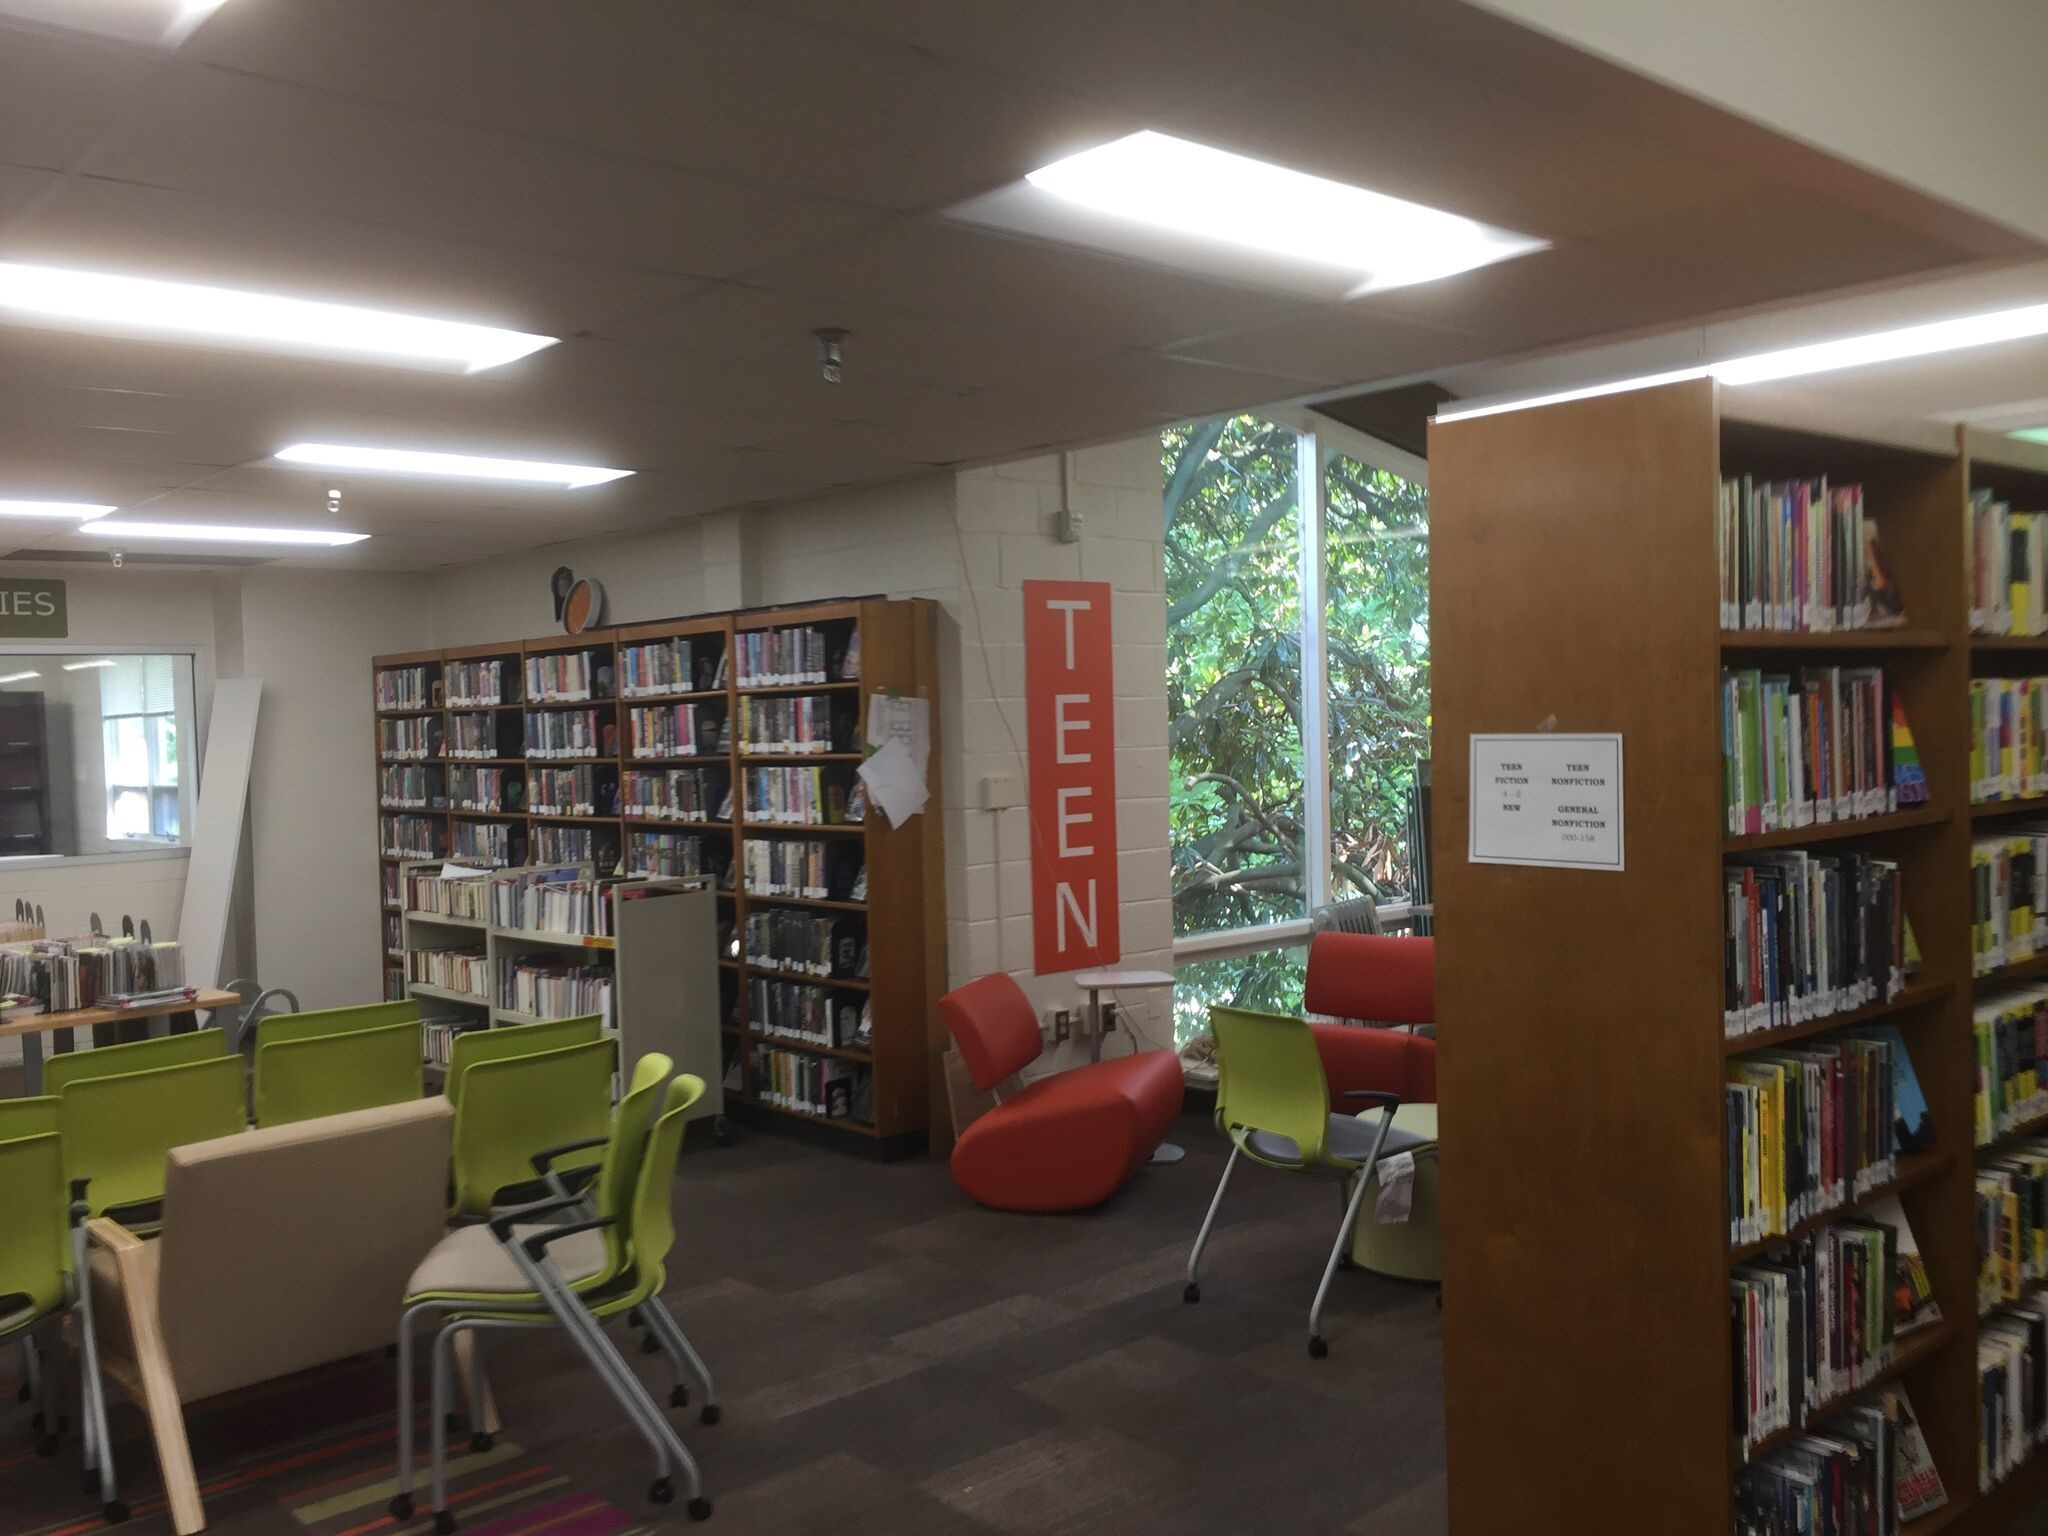 Have you noticed the cool new upgrades in your local library?